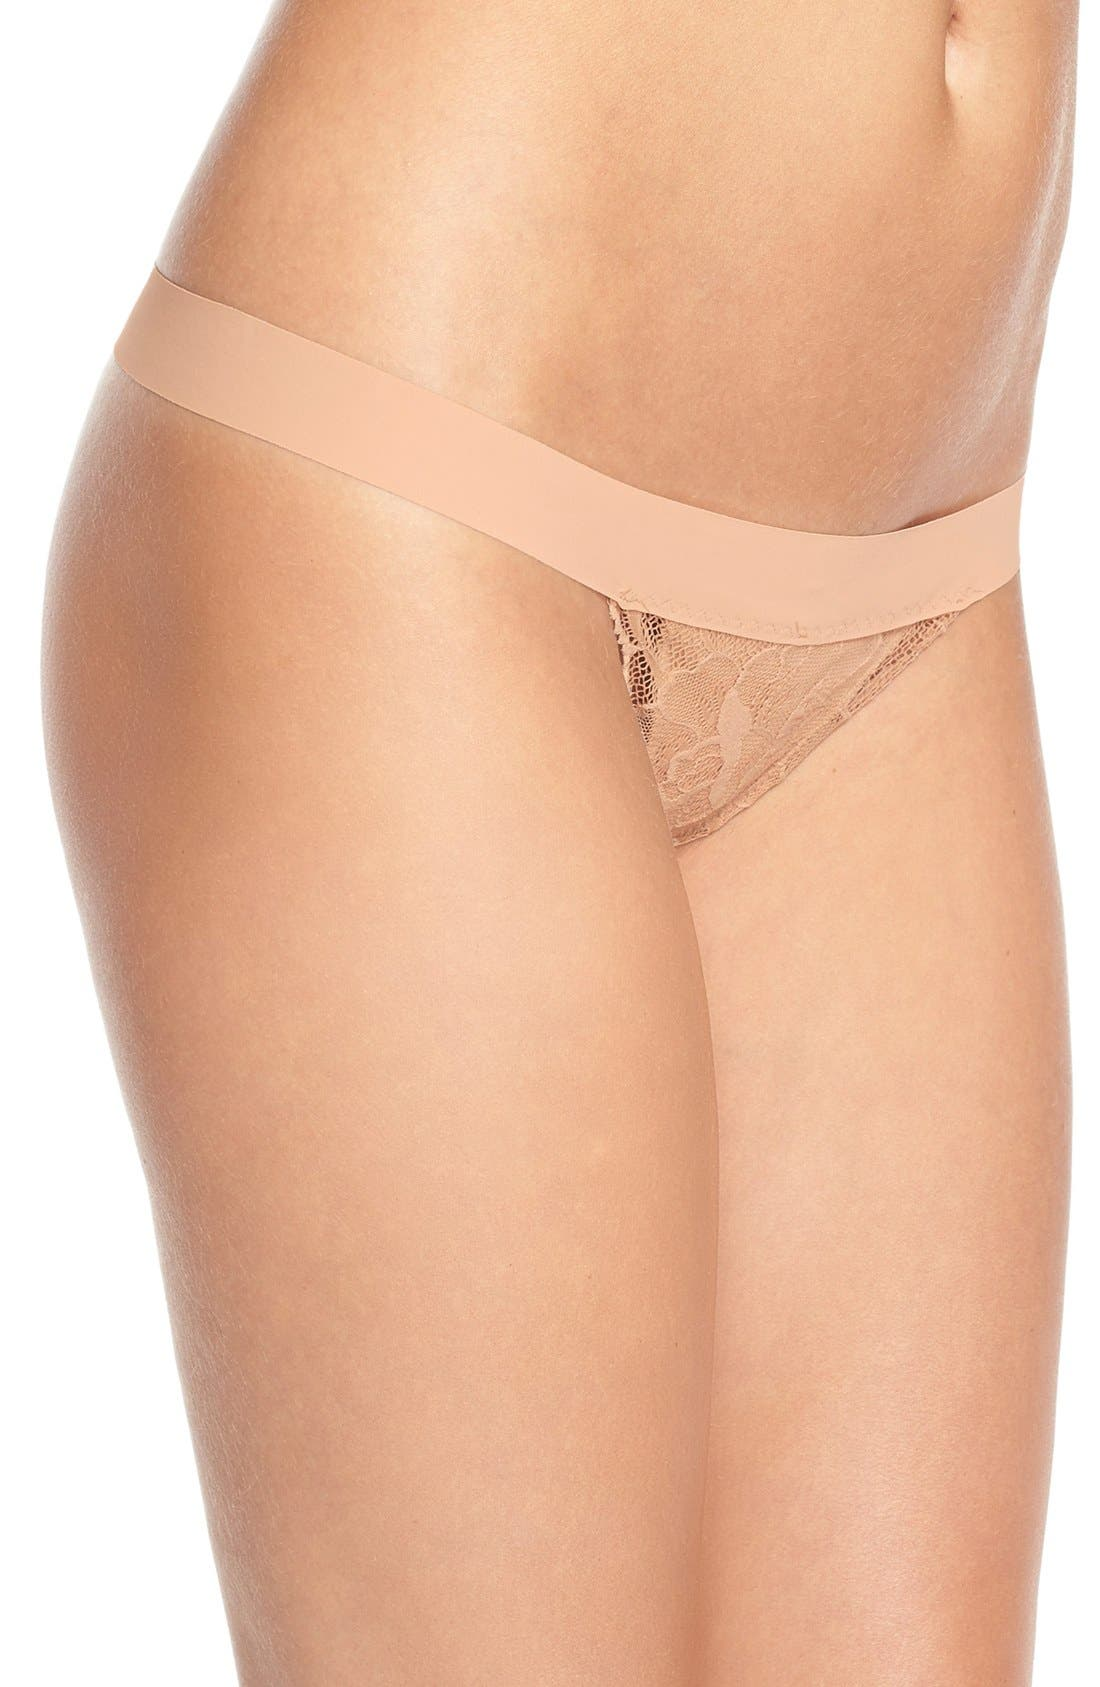 'Double Take' Lace G-String Thong,                             Alternate thumbnail 17, color,